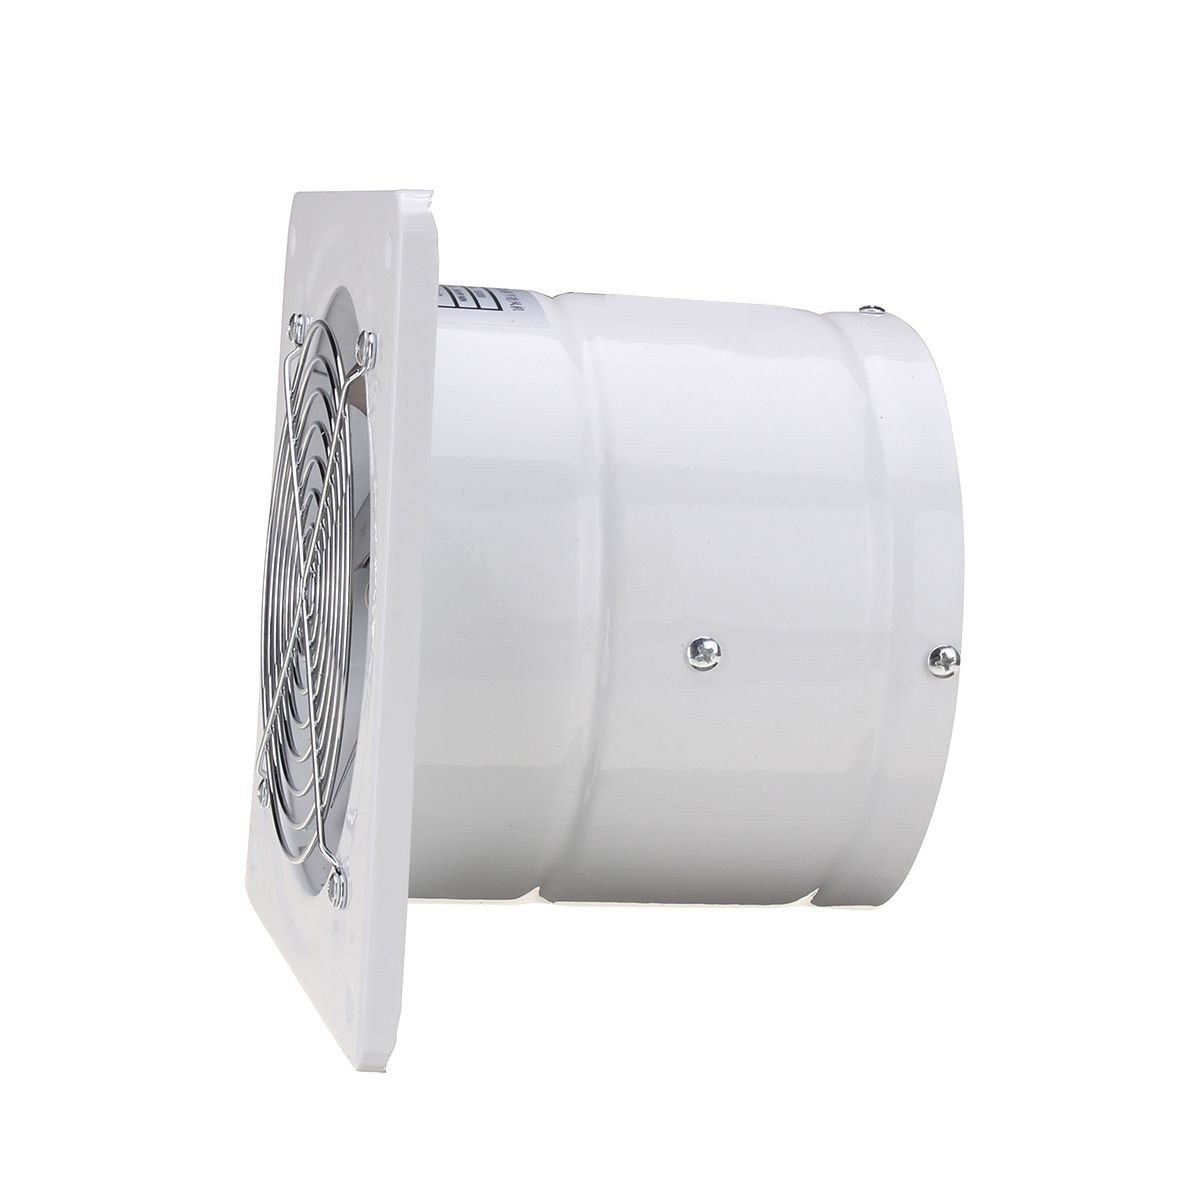 6 Inch 220V 40W Duct Booster Vent Fan Extractor Exhaust Fan Air Ventilation  Fans Wall Window For Home Toilet Bathroom Kitchen